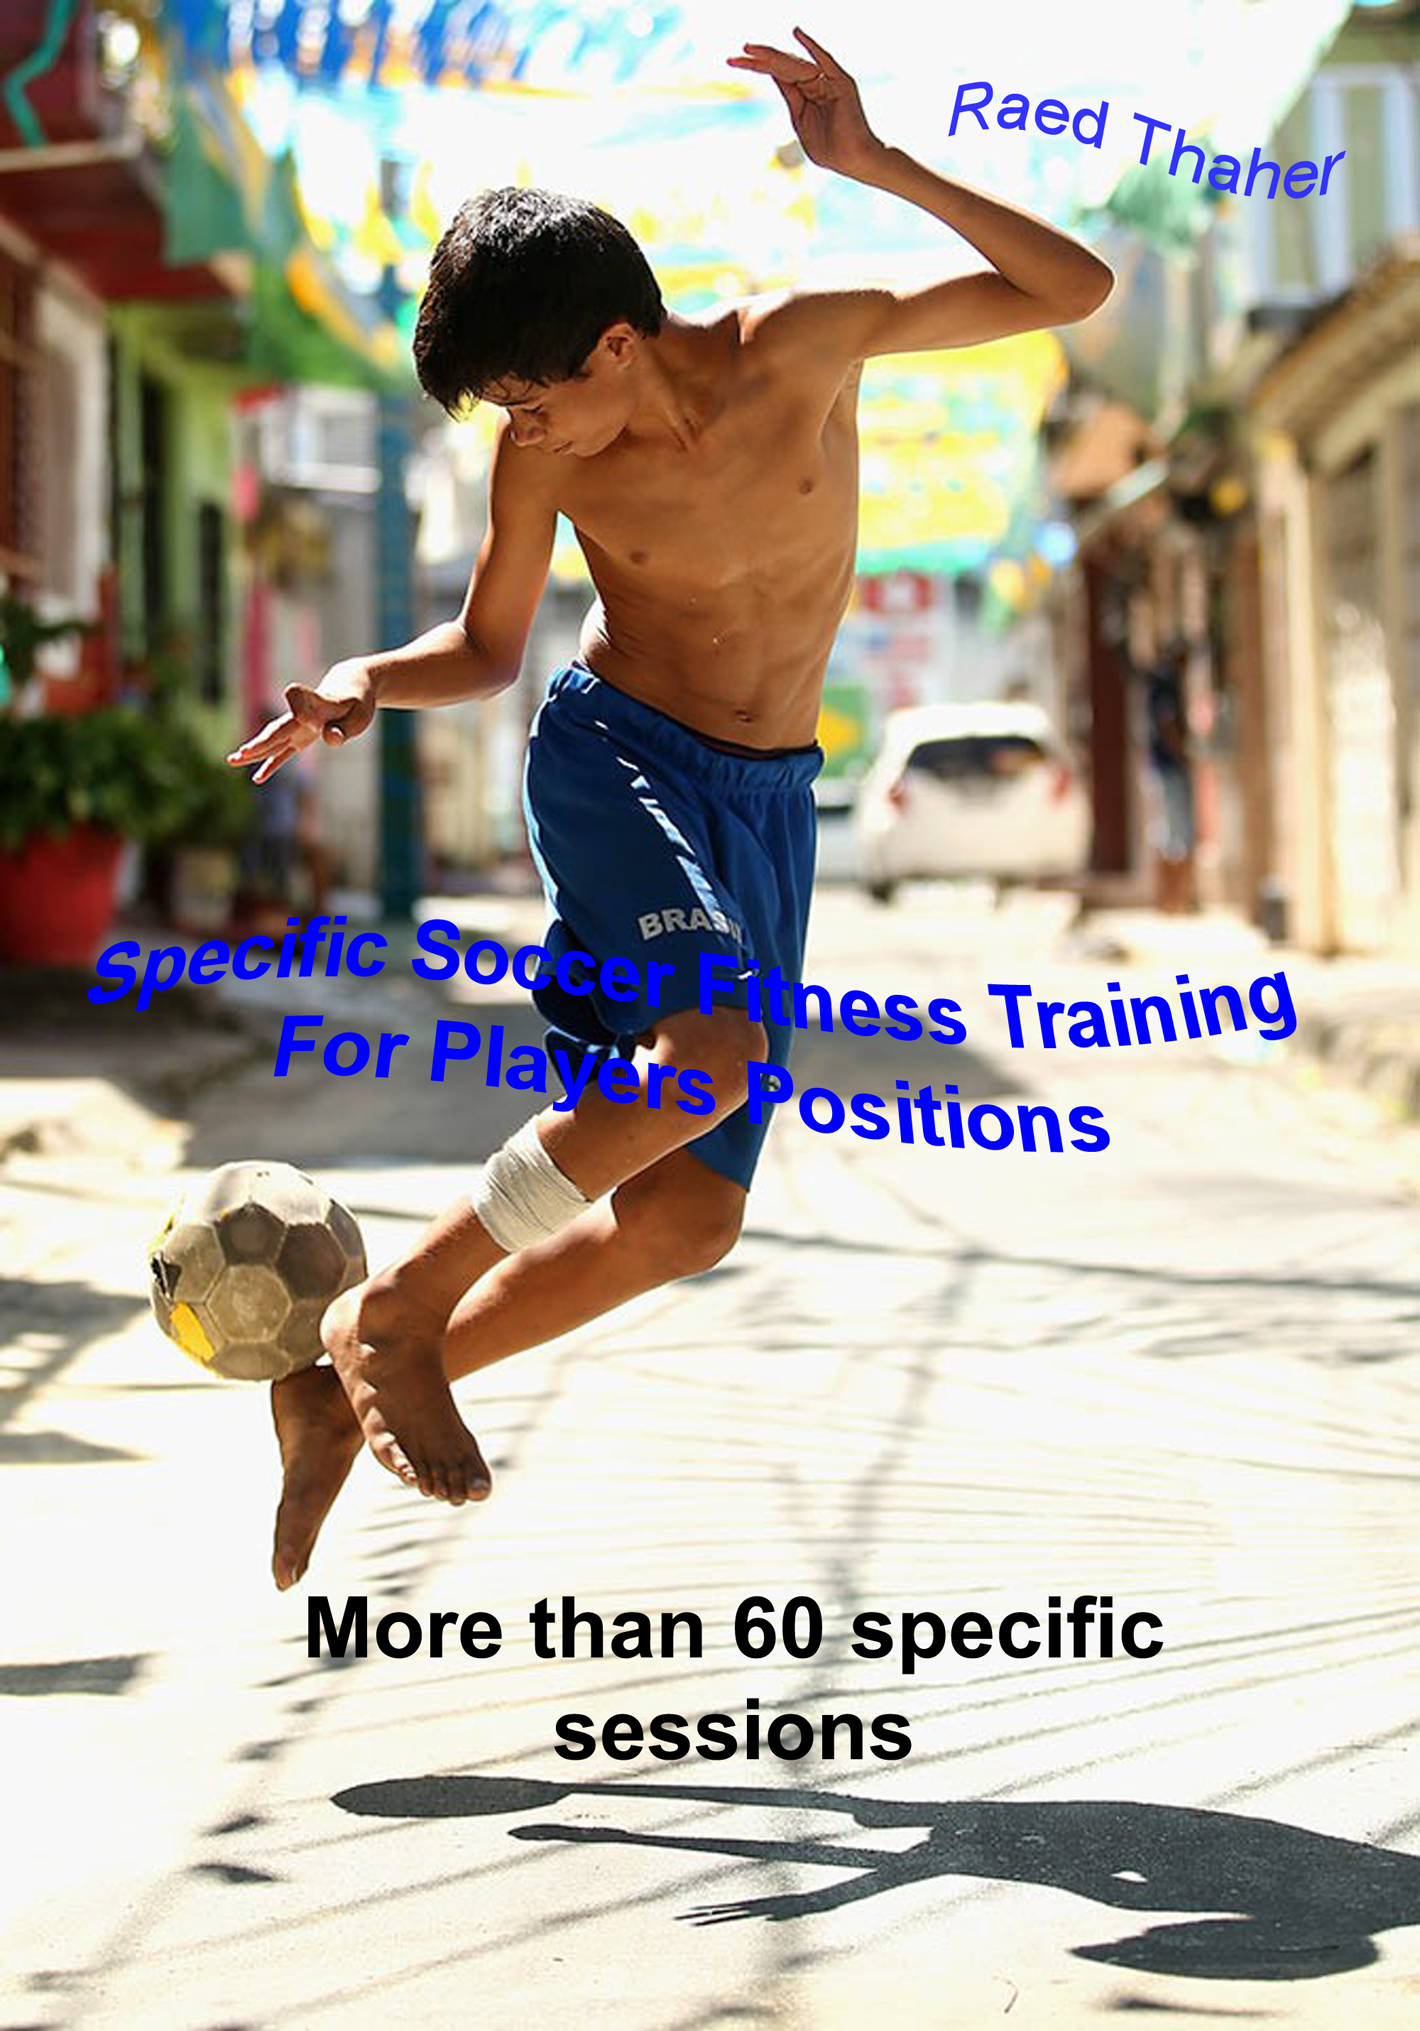 Specific Soccer Fitness Training For Players Positions, an Ebook by Raid  Daher